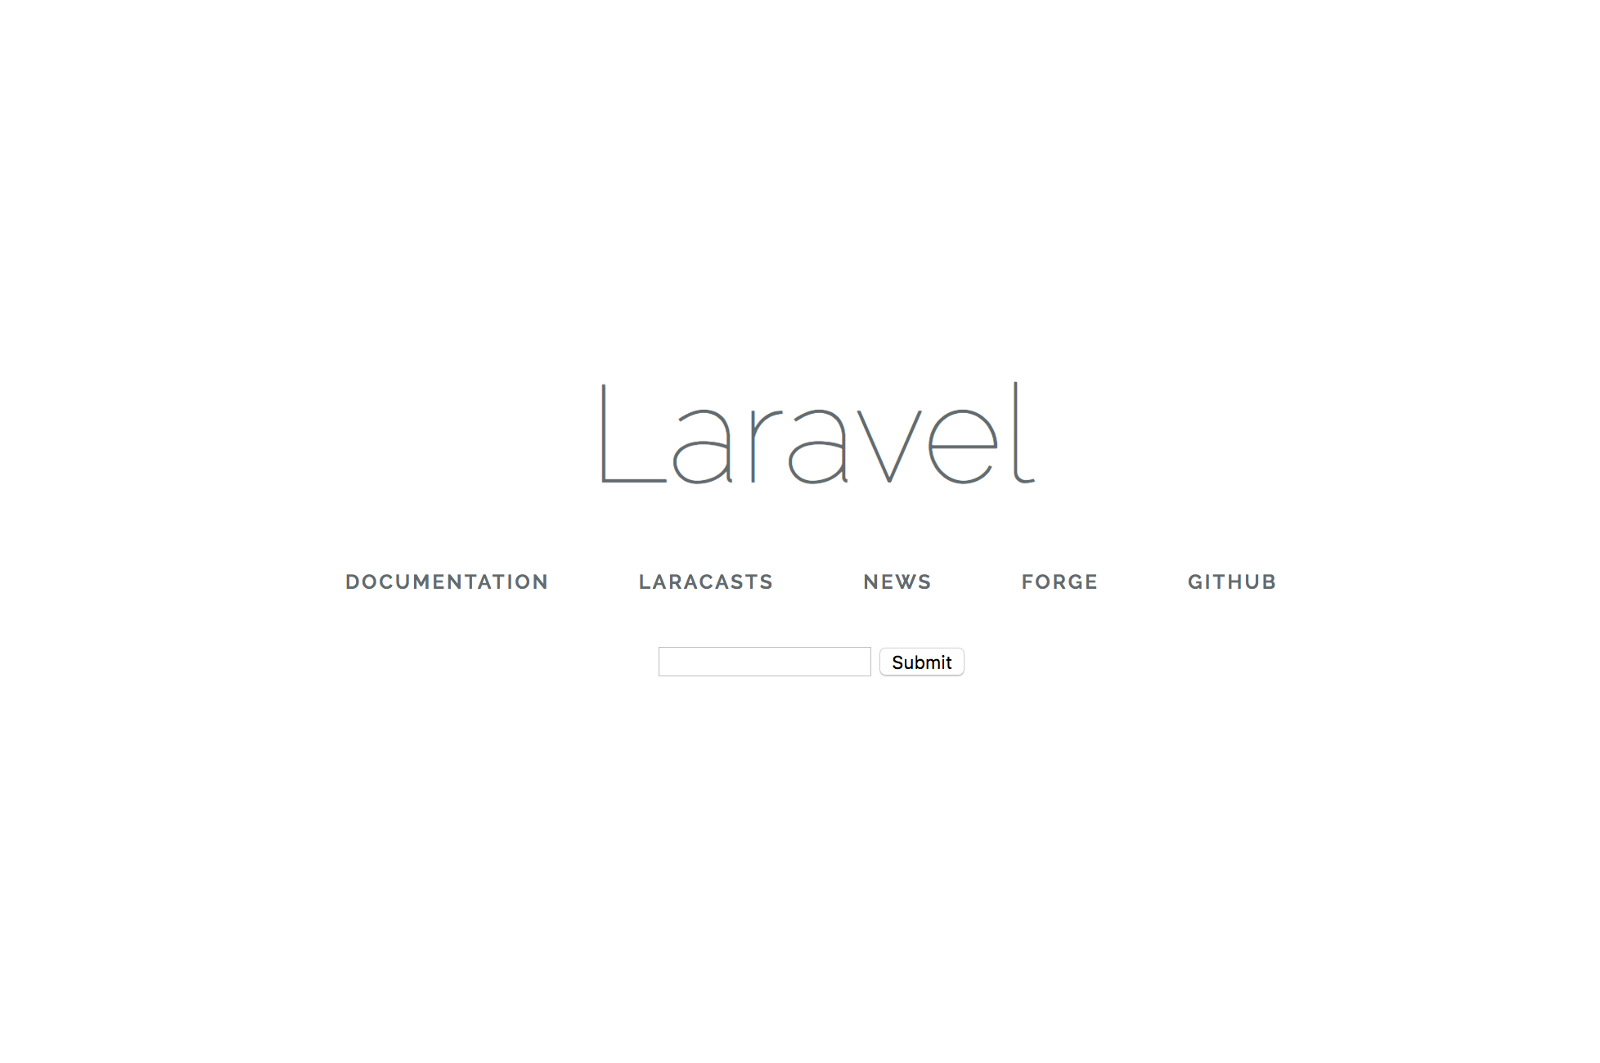 How to authenticate for Pusher through Laravel Passport